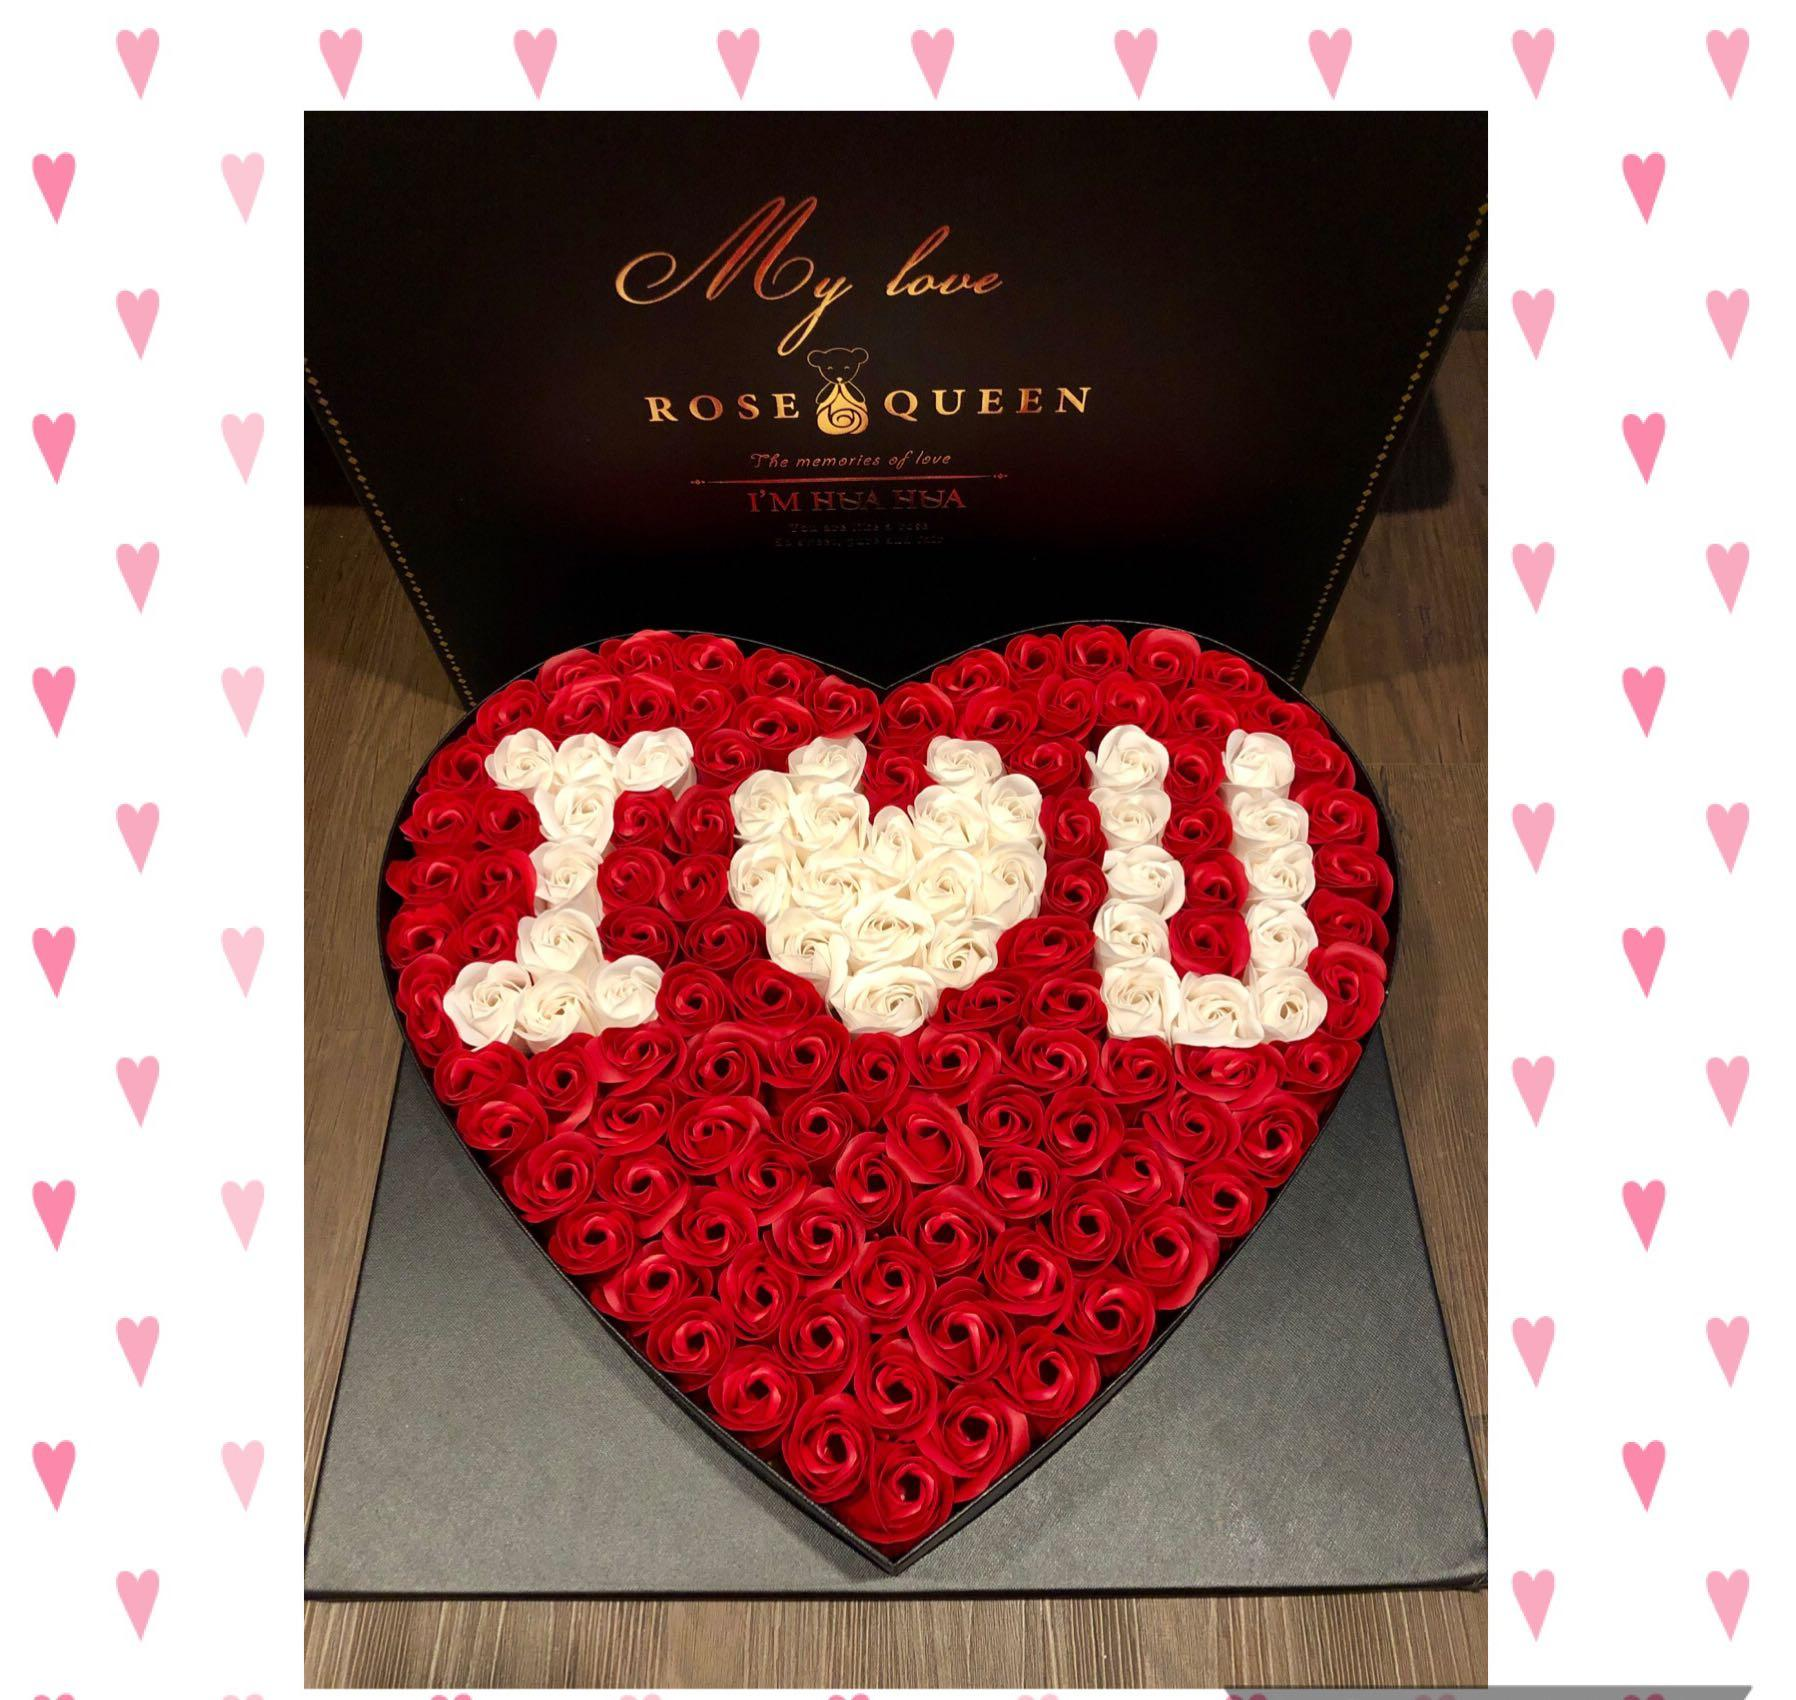 Valentine S Day Gift Set These Can Last For Years 99 Stalks Of Handmade Real Soap Roses Gift Box Ideal For Valentine S Day Marriage Proposal Birthday Anniversary Comes With A Nice Box Greeting Card Design Craft